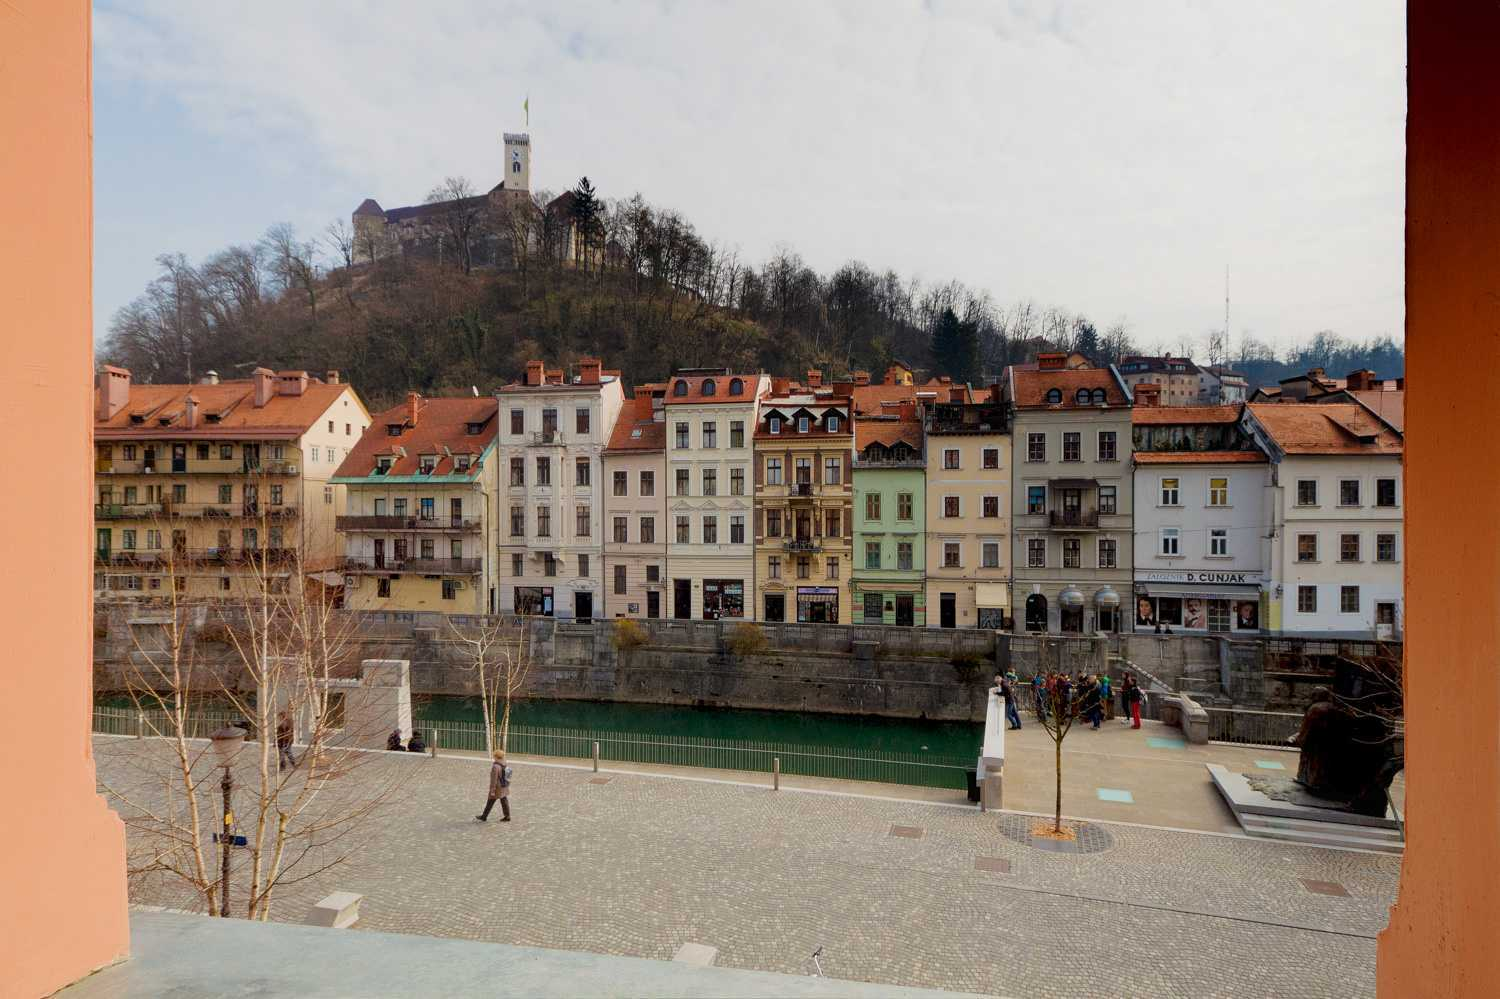 The apartment has a view of the old town and the Ljubljana castle.